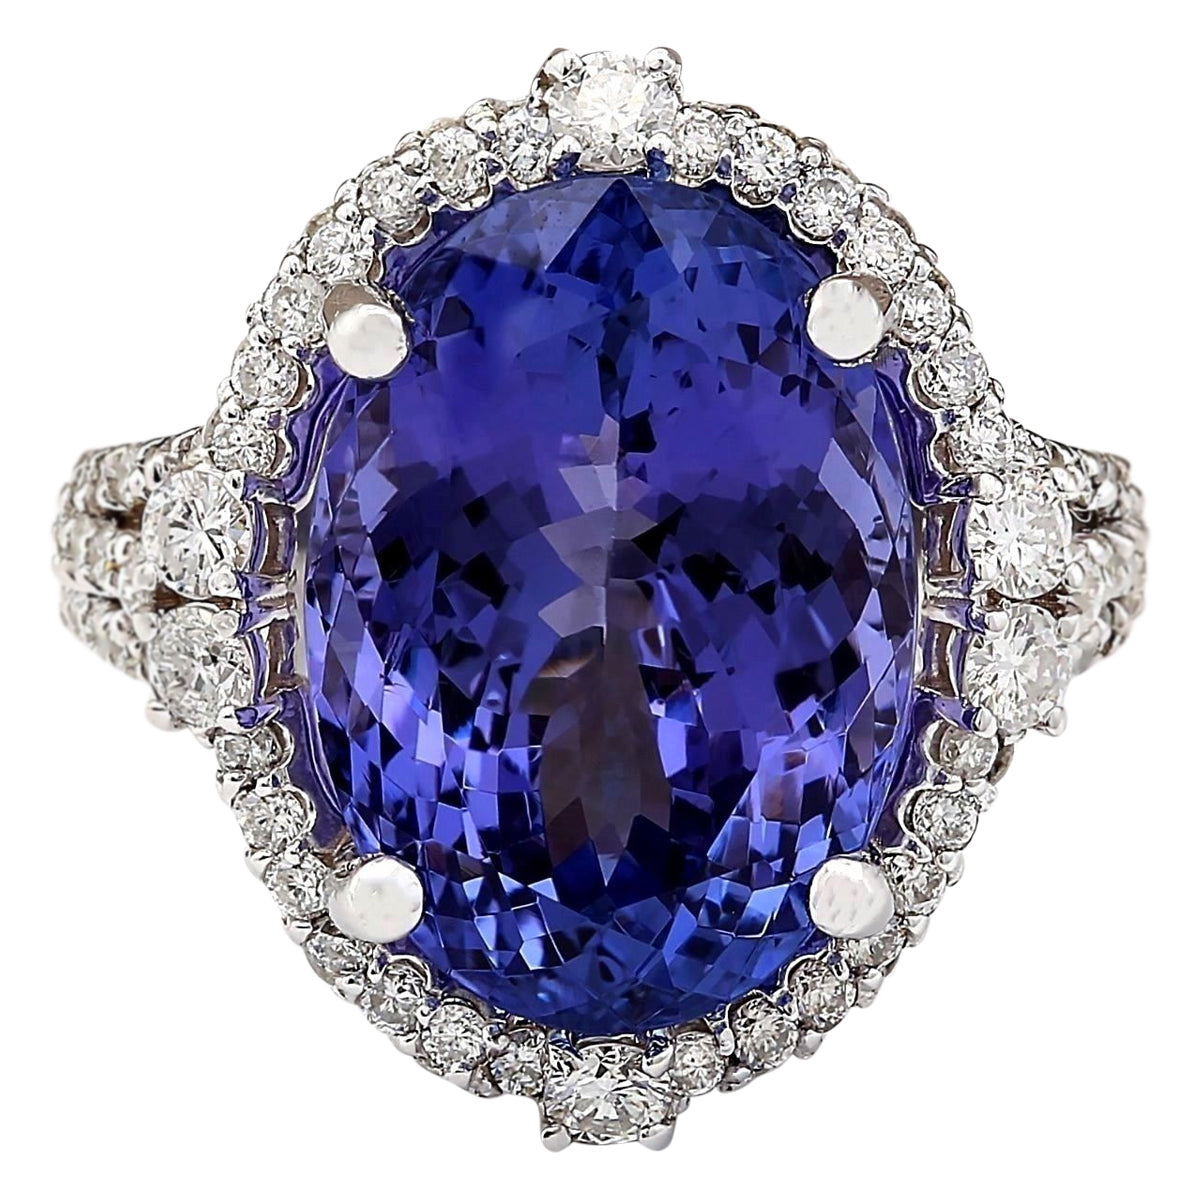 12.87 Carat Natural Tanzanite 14K White Gold Diamond Ring